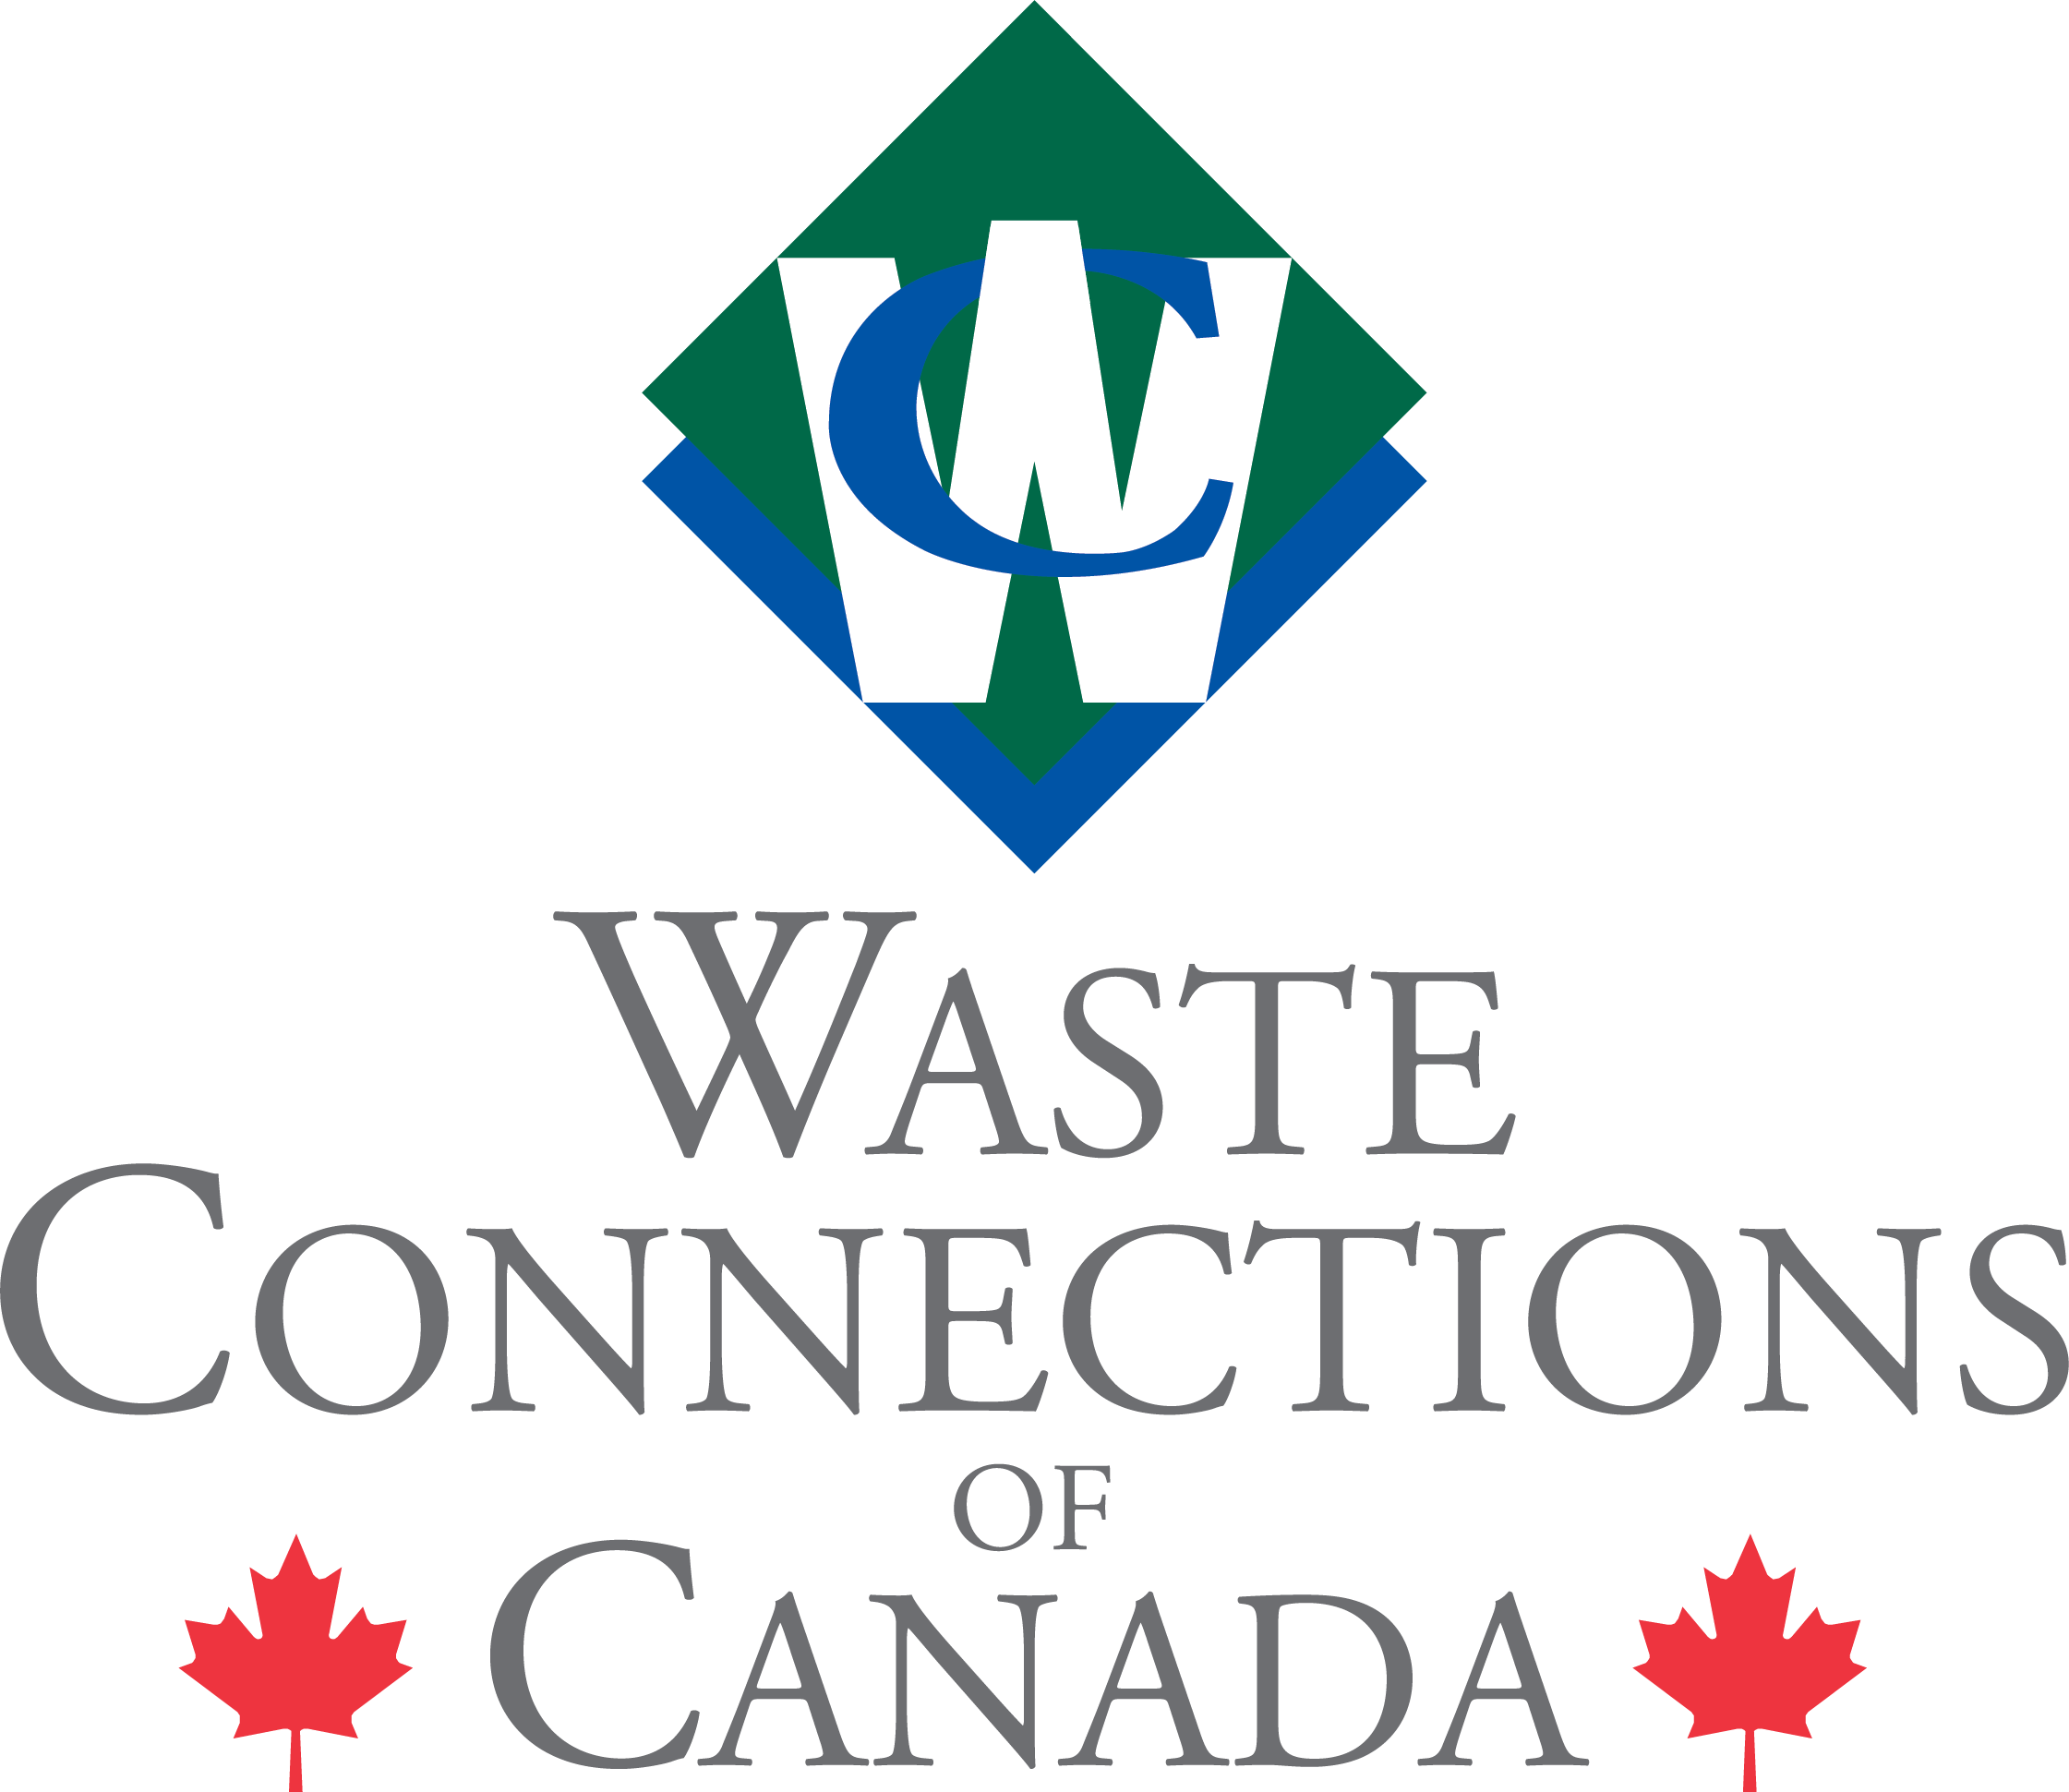 Waste Connections of Canada Logo.png